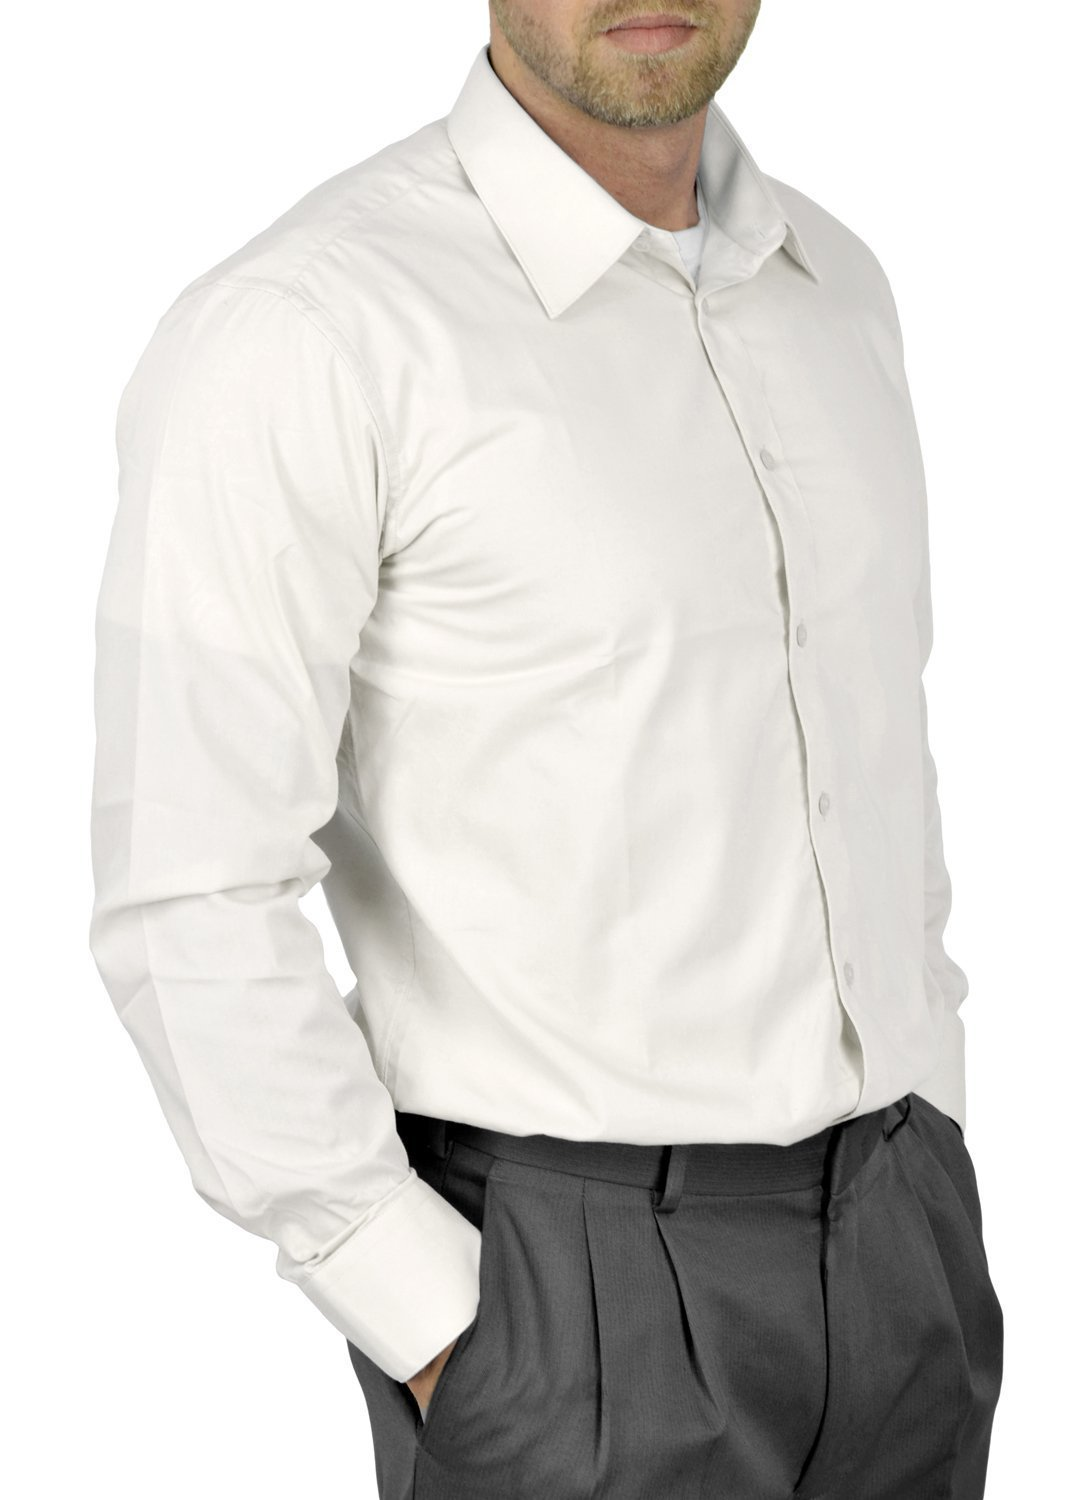 Moda Di Raza Mens Dress Shirt Slim and Regular Fit Office Casual French Cuff White 17.5